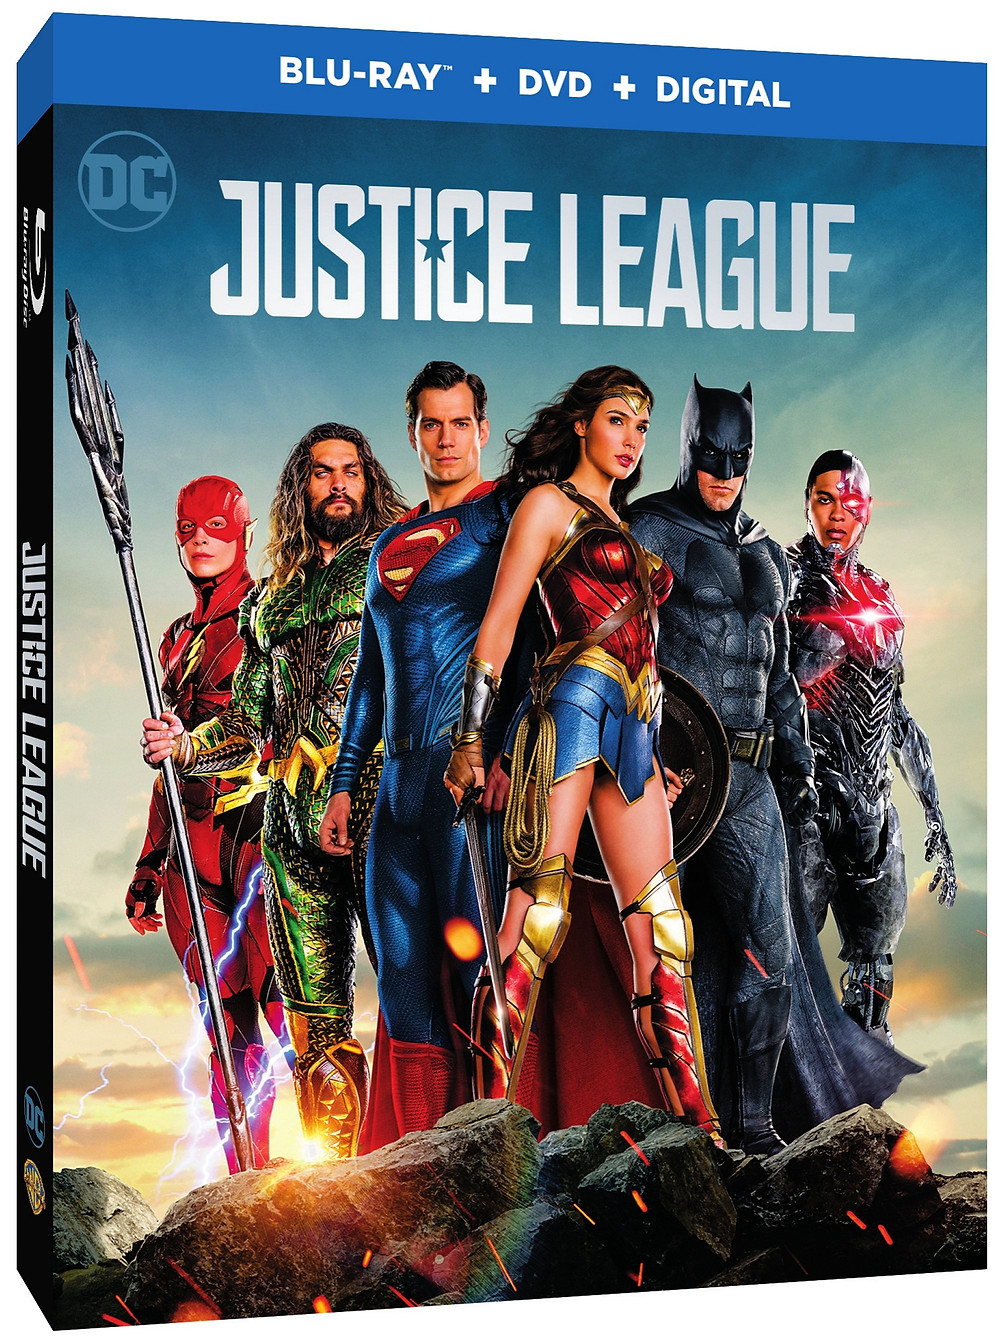 Justice League box art